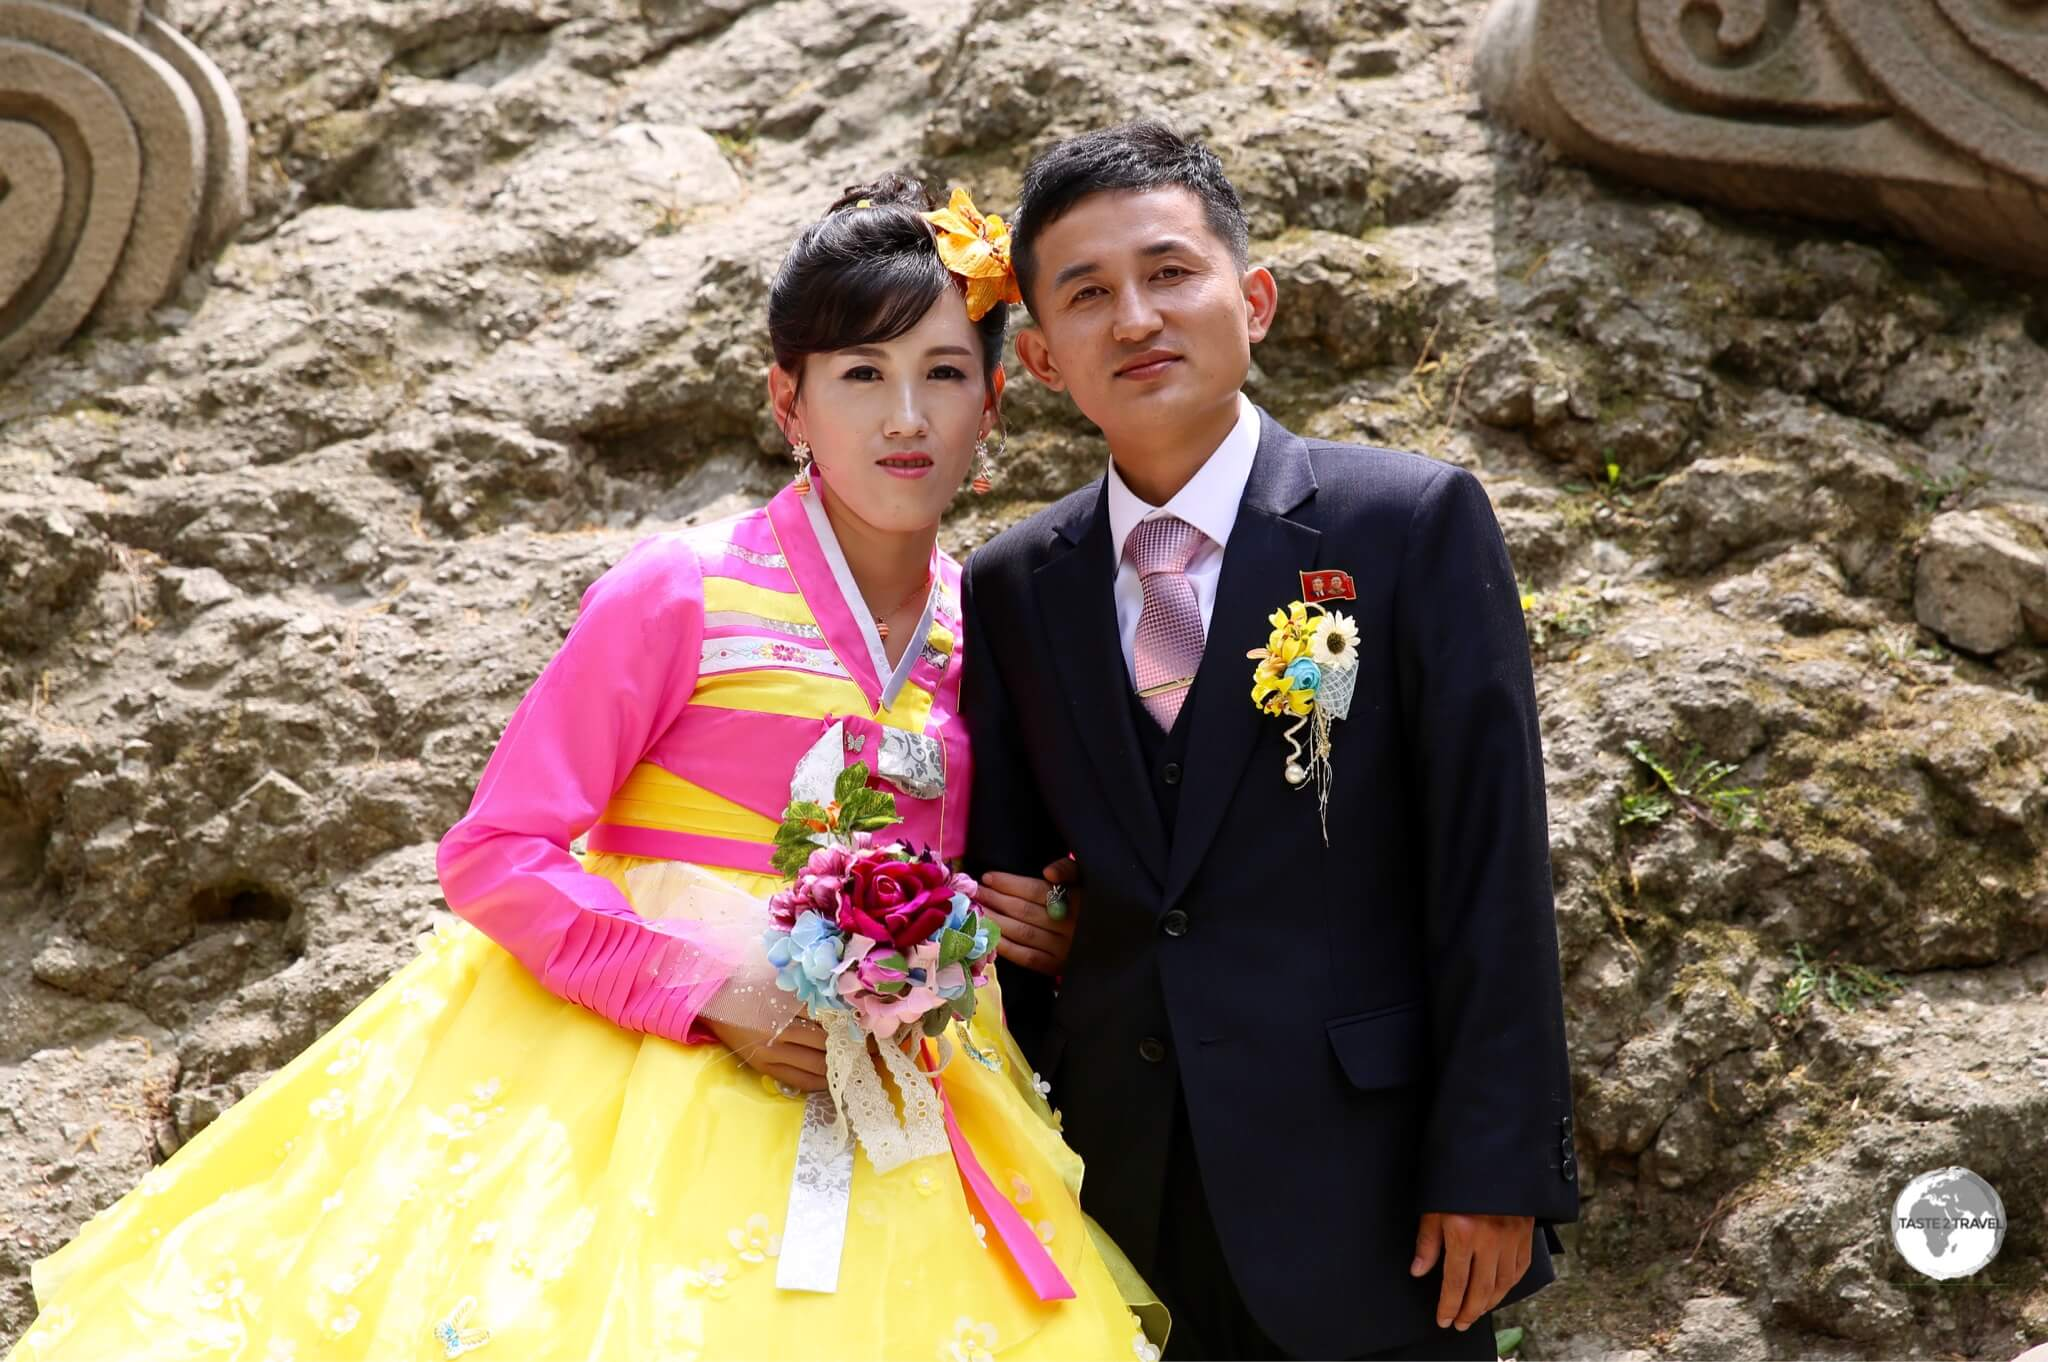 Like everywhere else in the world, Spring is the time for North Koreans to wed. Here, a newlywed couple is happy to pose for the camera.